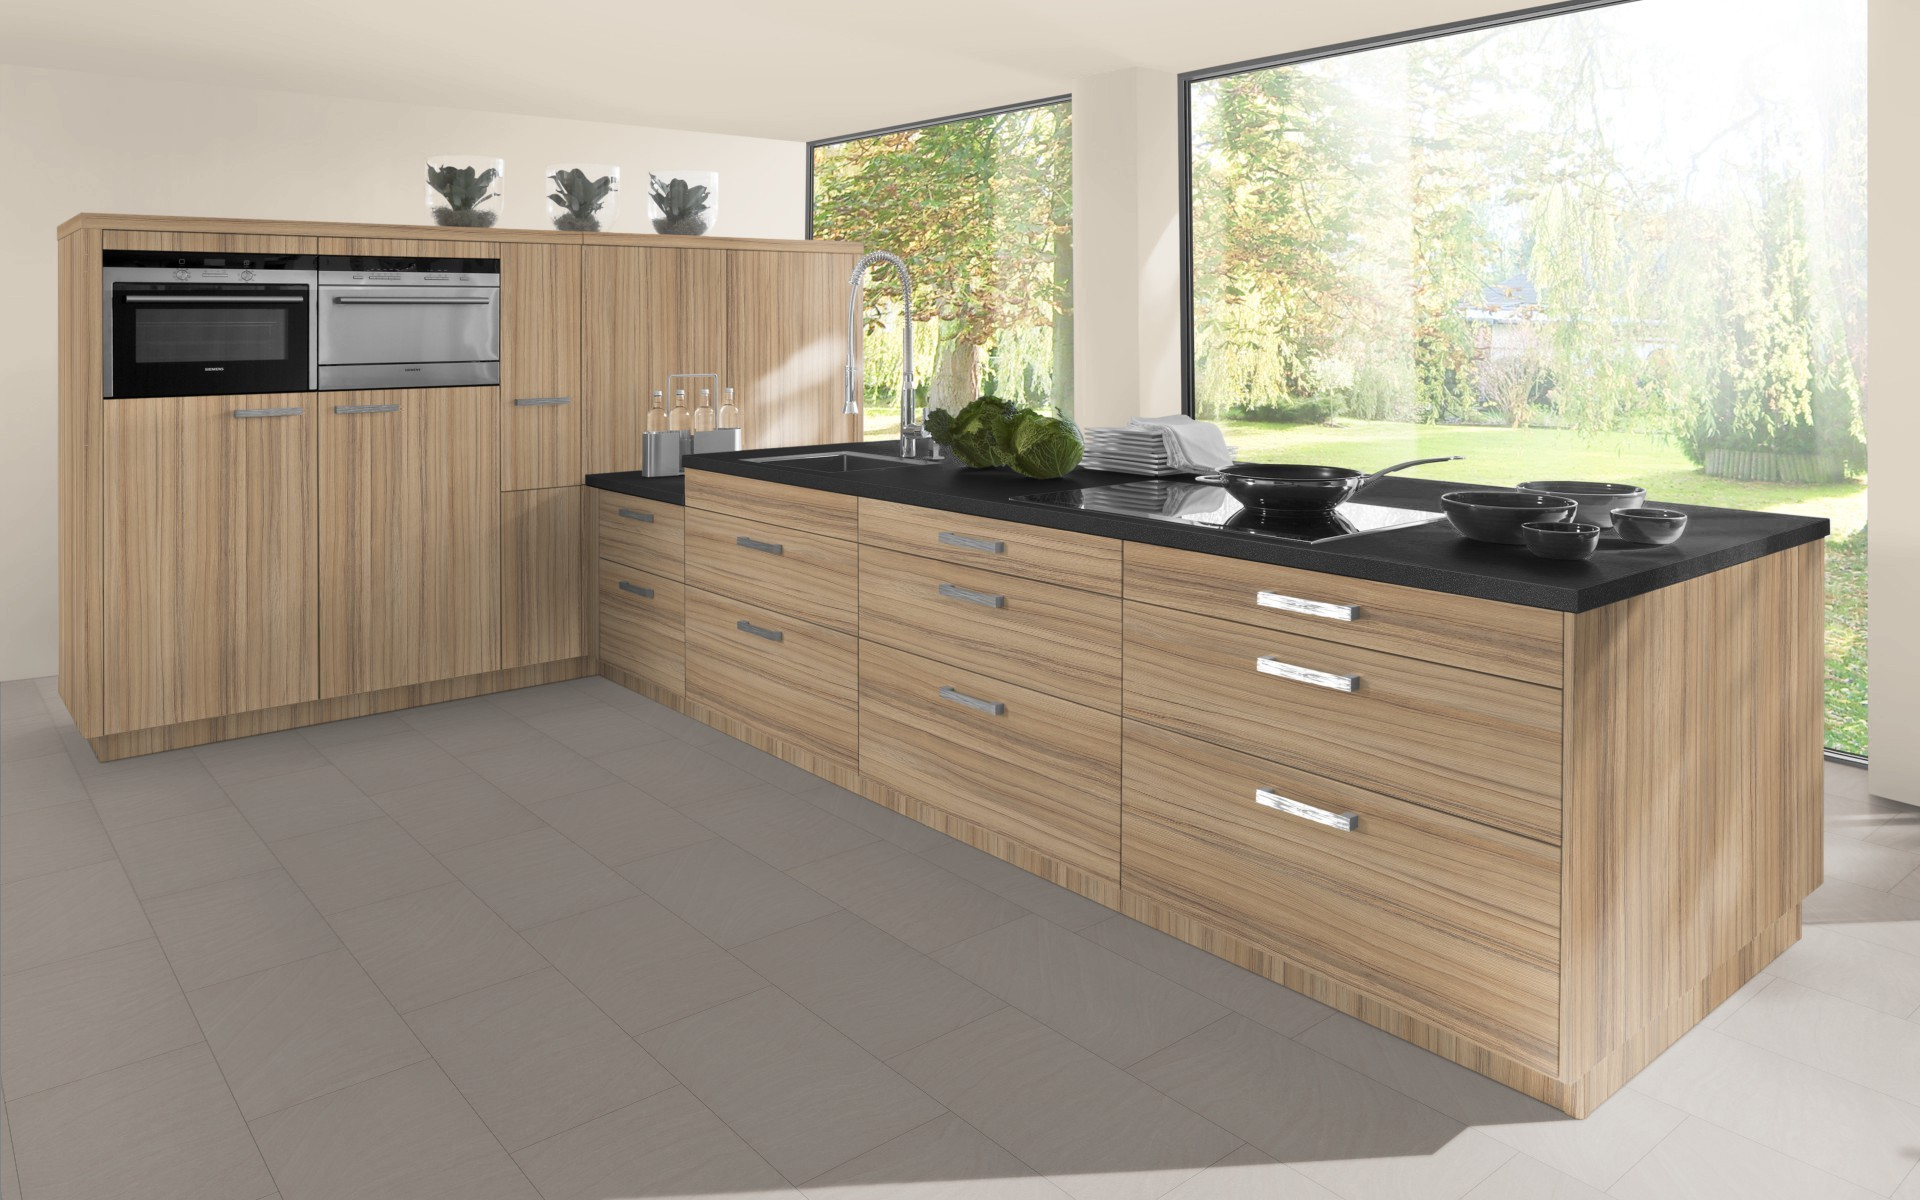 full height kitchen cupboards with High Gloss Tall Height Larder Broom Cupboard Doors on Stealth C er Vans Just Got Classy additionally Ultra Modern Kitchen Designs besides 232218302216 likewise Current Favourite 204 likewise Torino Solid Oak Corner Desk.